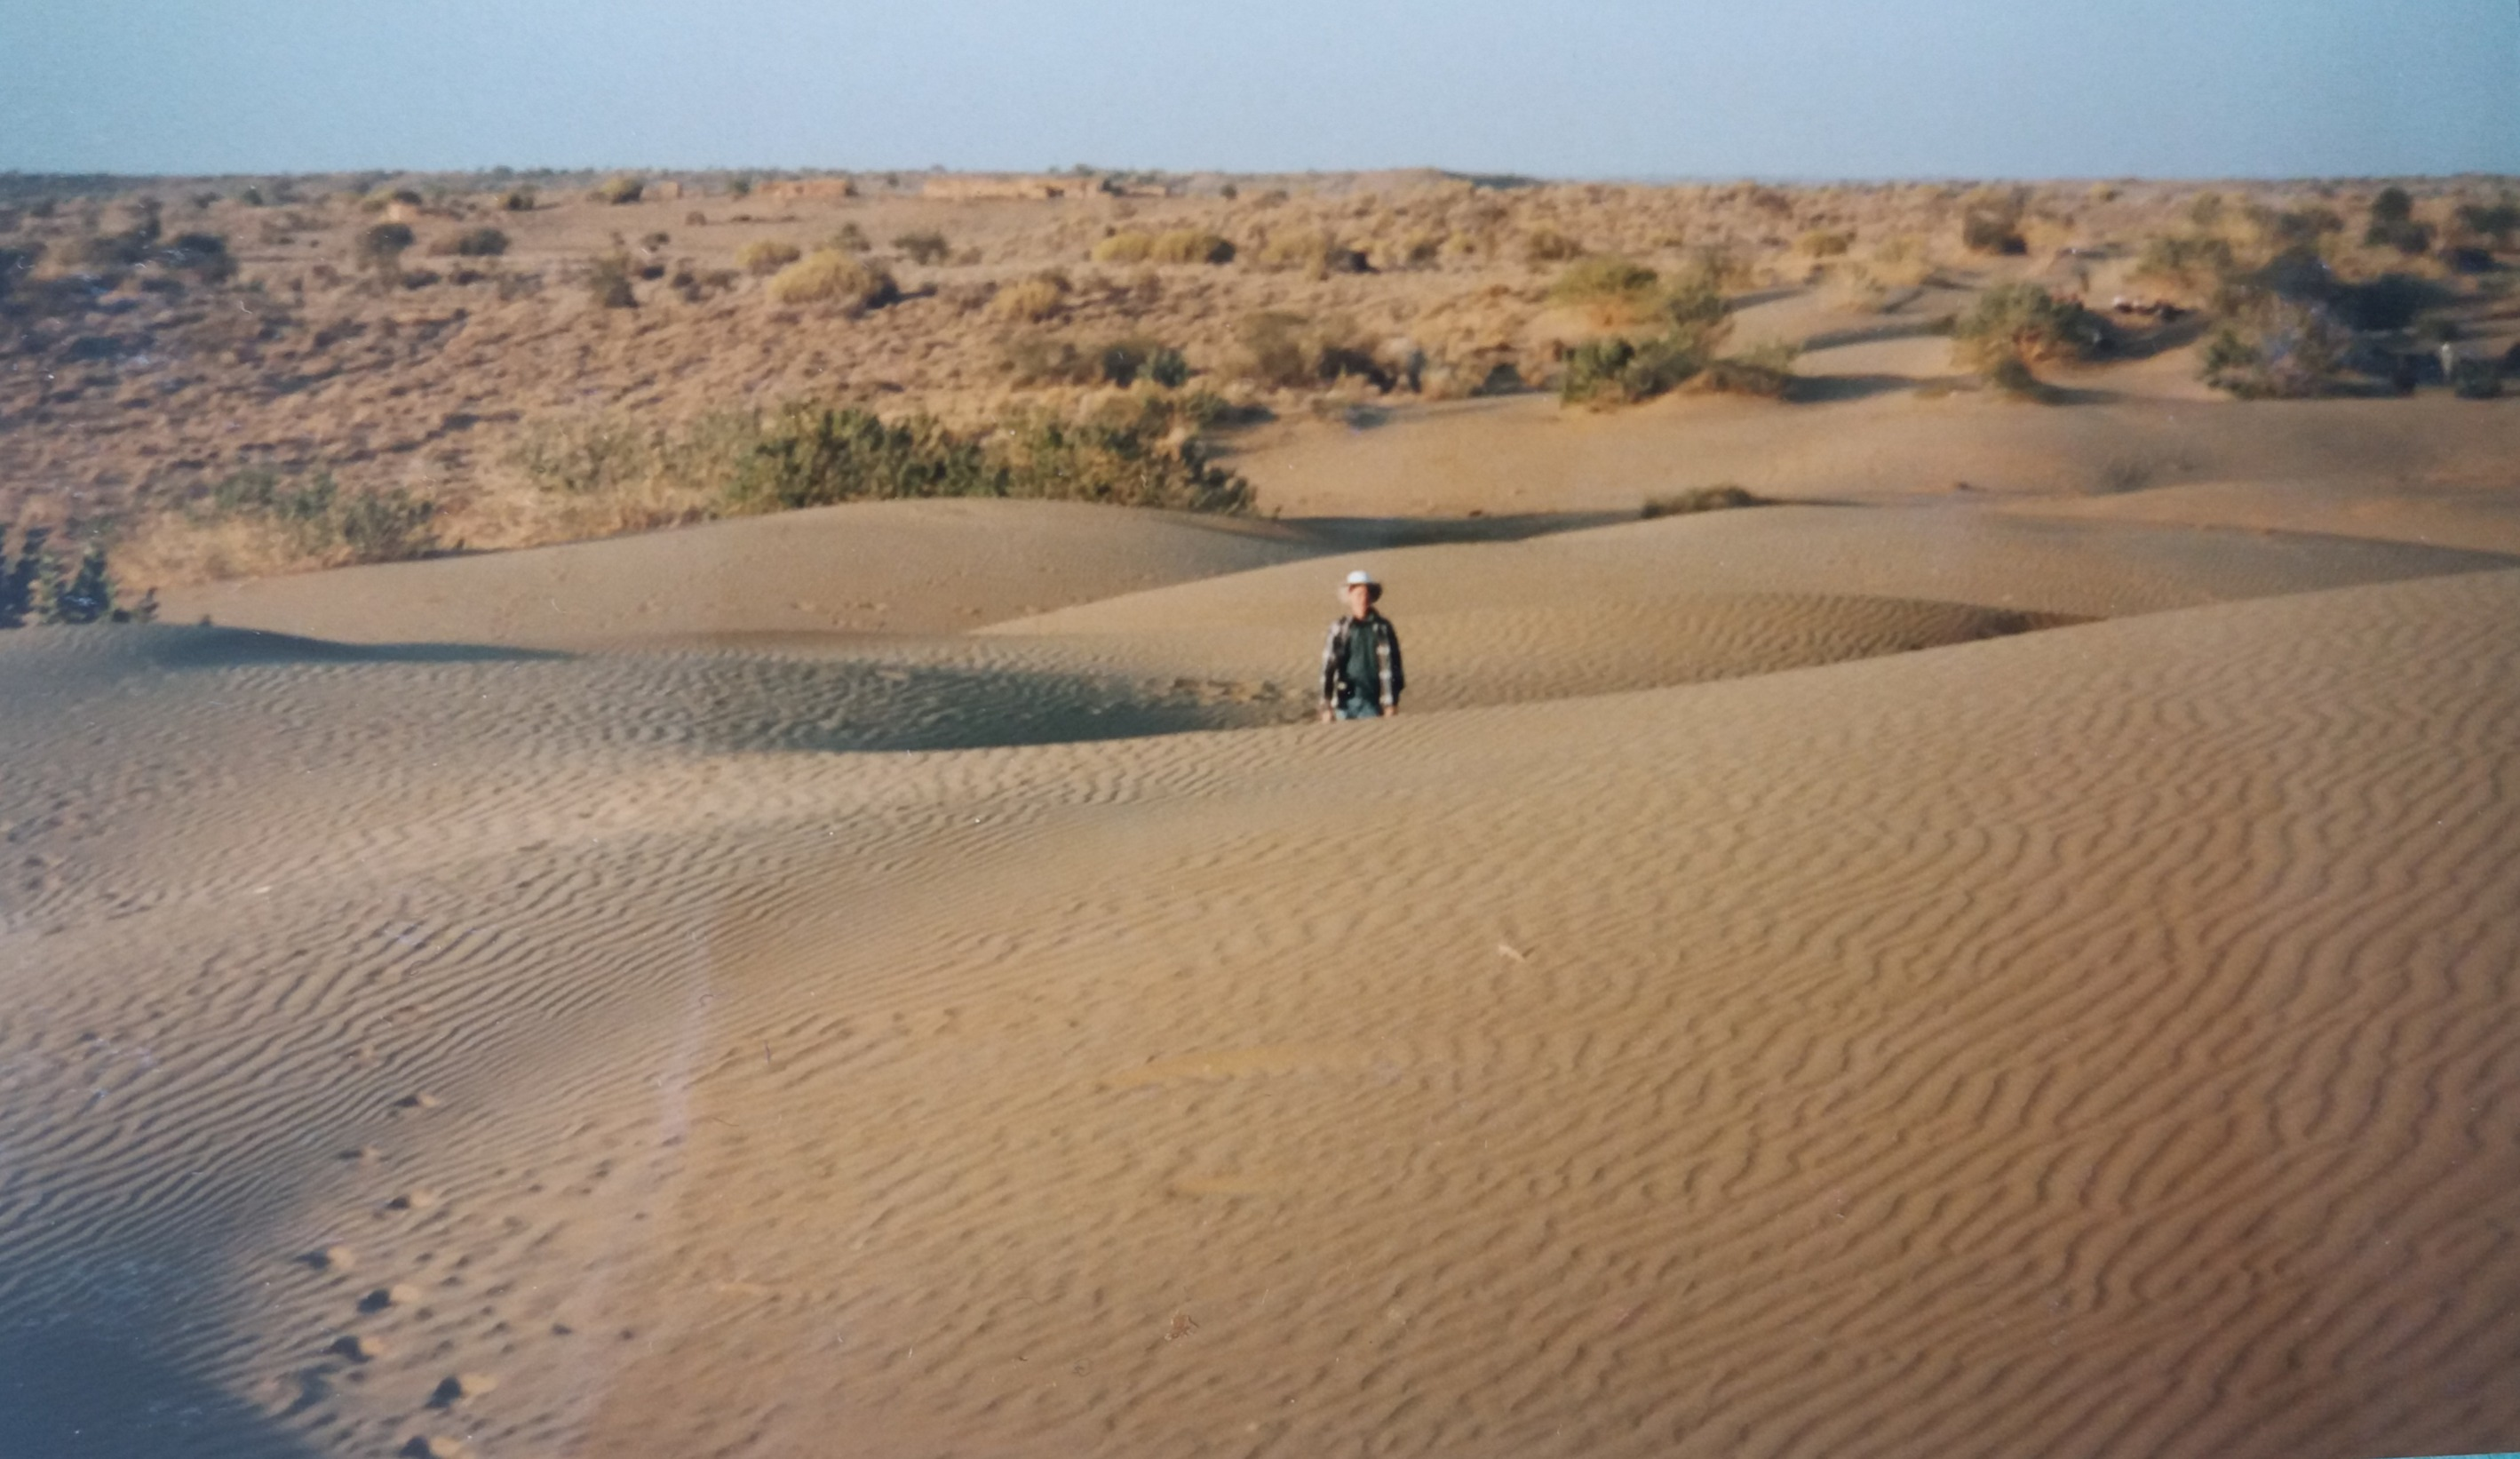 India diary - Day 10 - desert near Jaisalmer